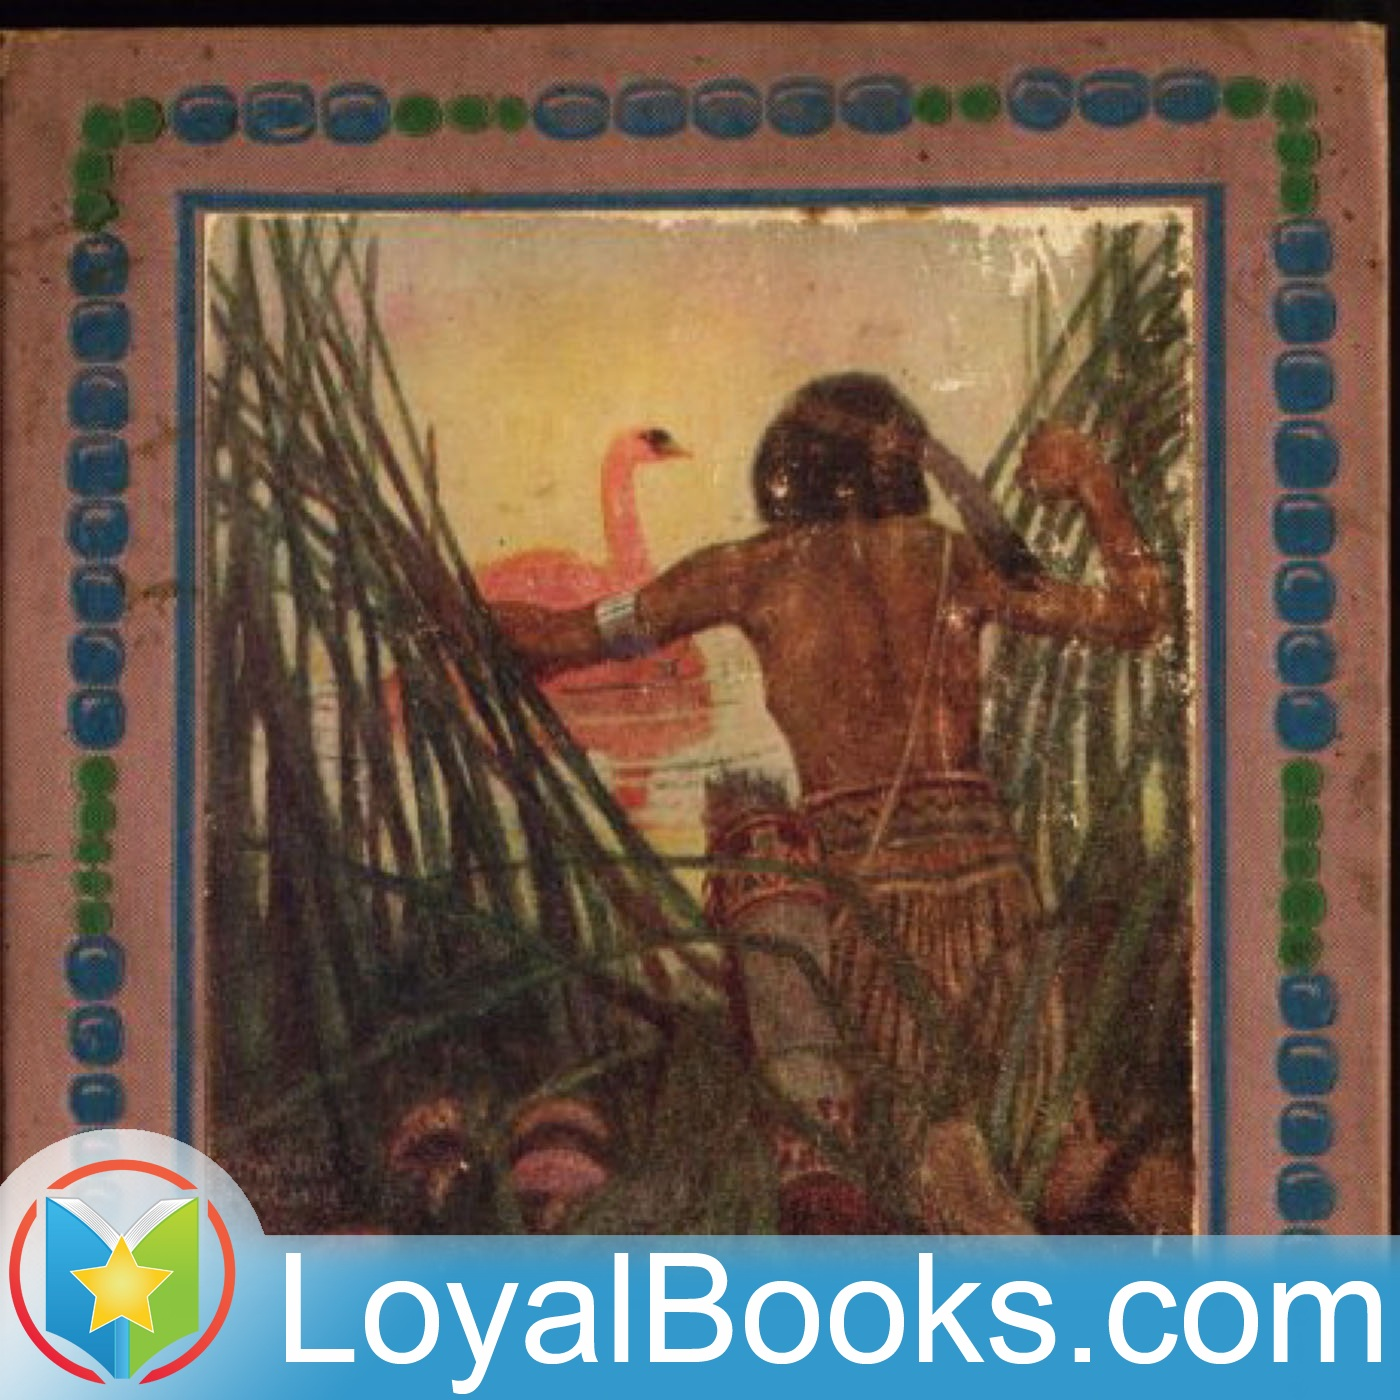 <![CDATA[American Indian Fairy Tales by H. R. Schoolcraft]]>